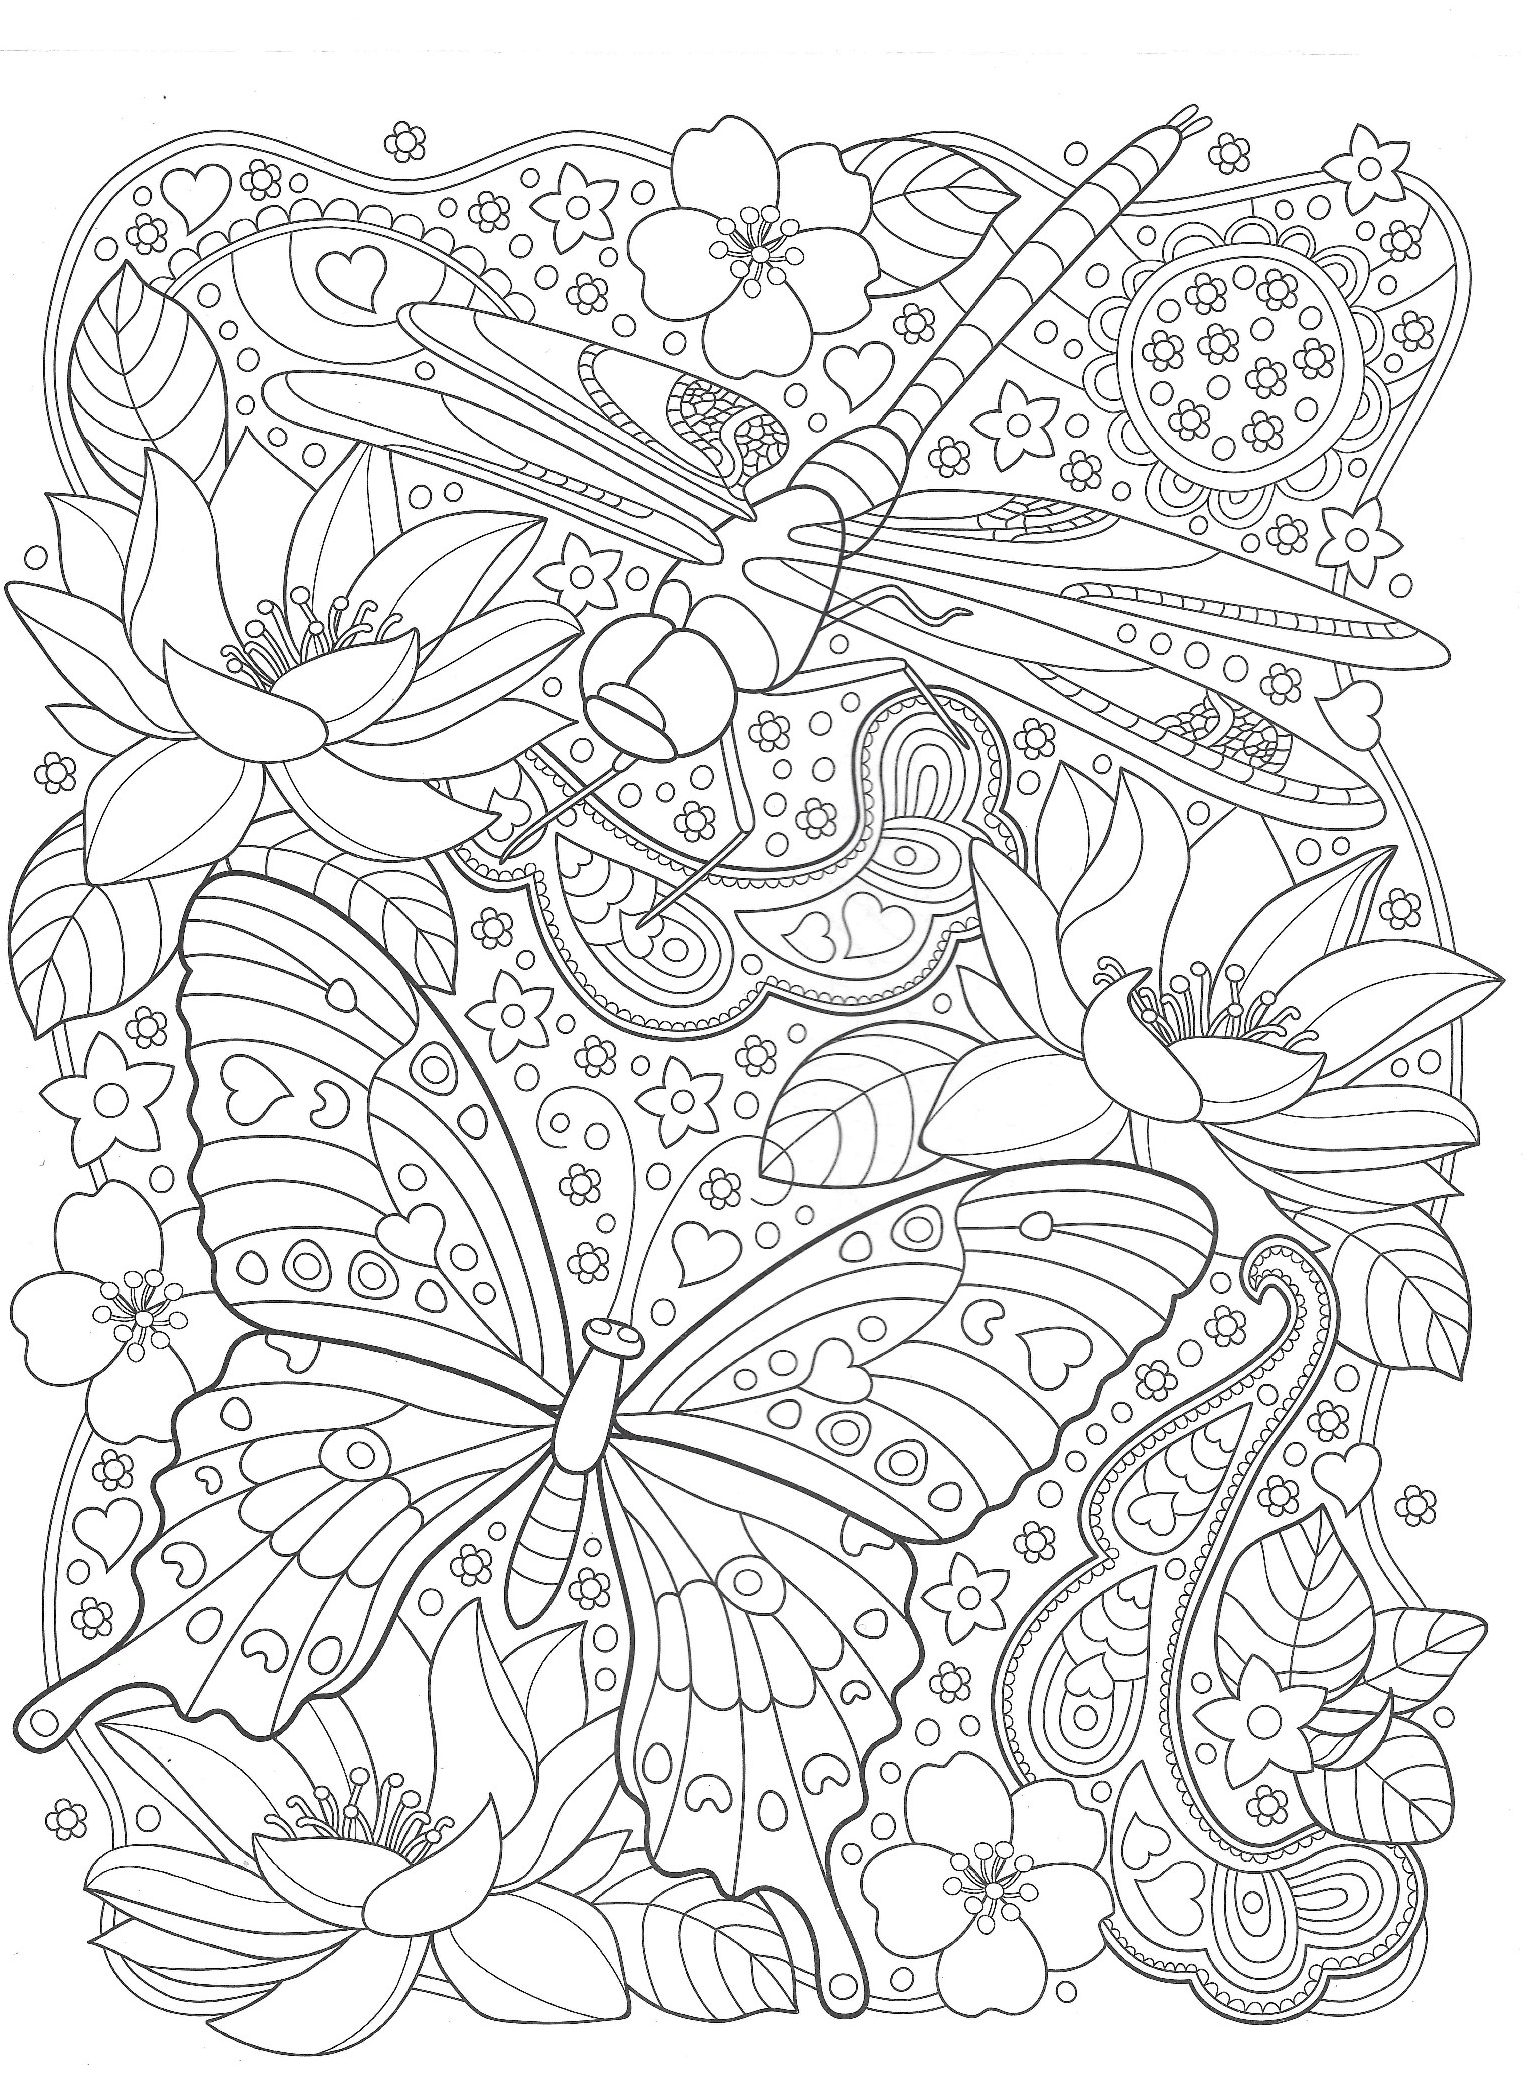 Butterfly and dragonfly with flowers